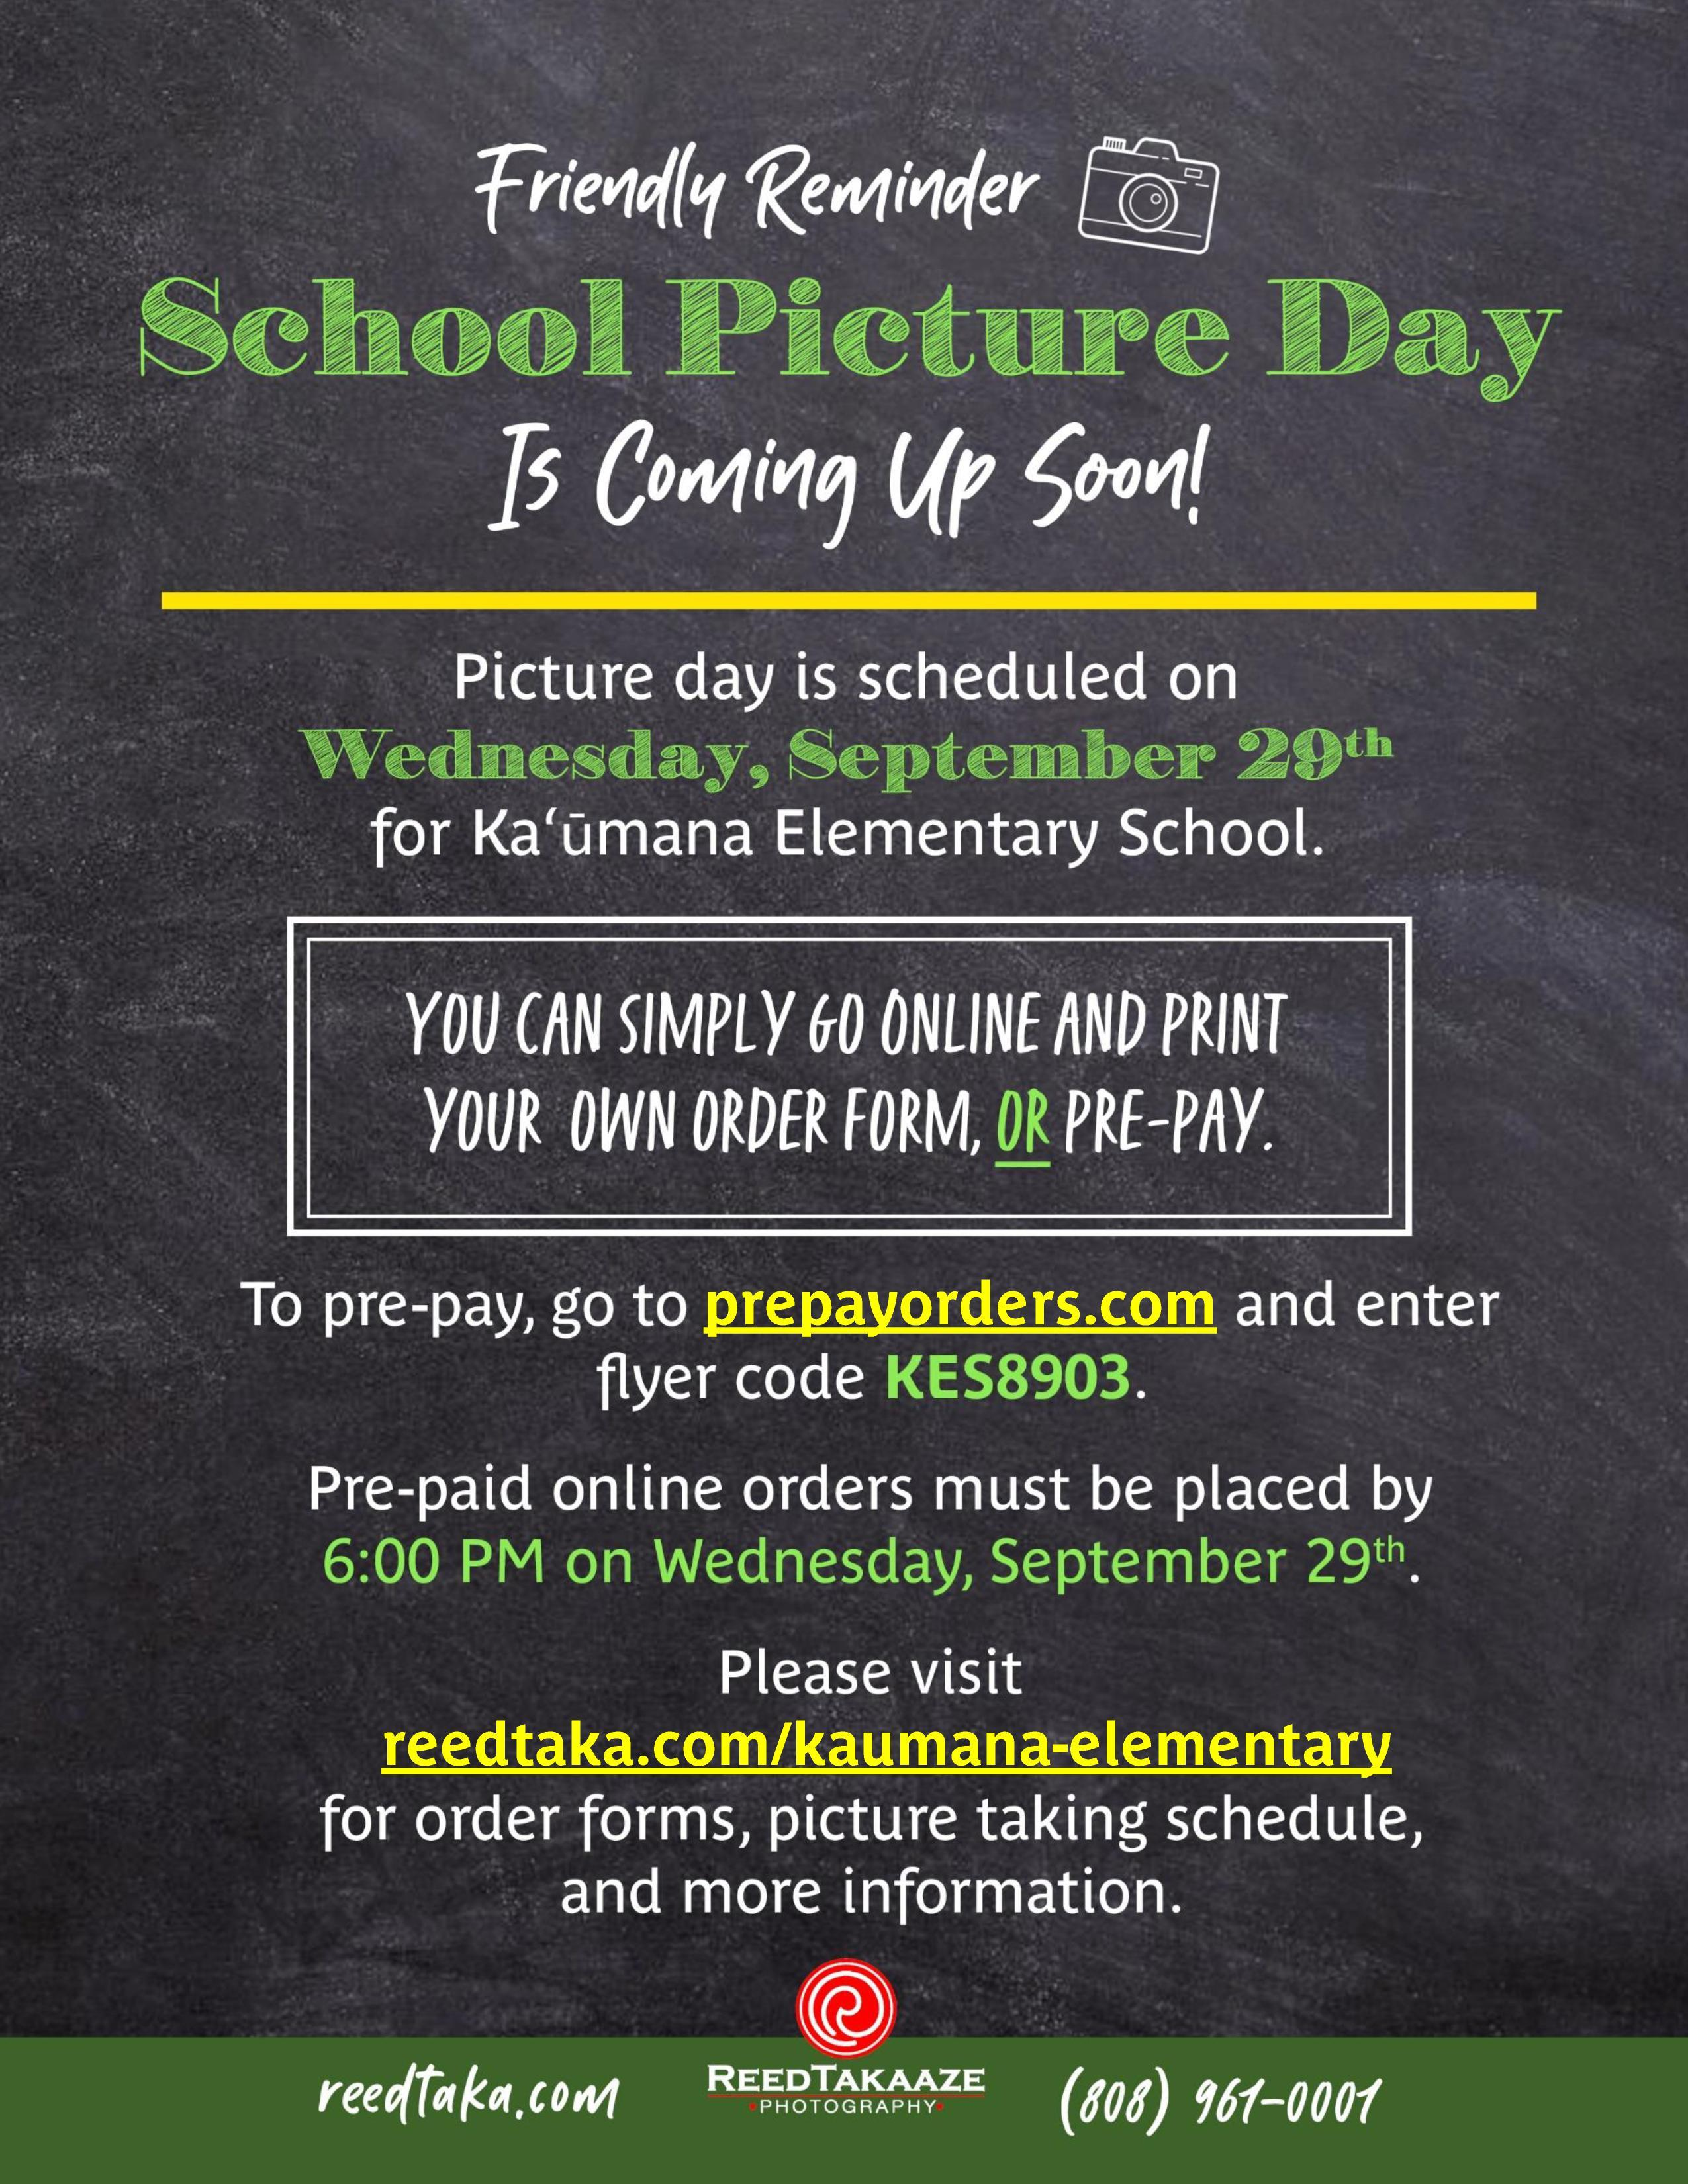 School Picture Day Is Coming Up Soon!